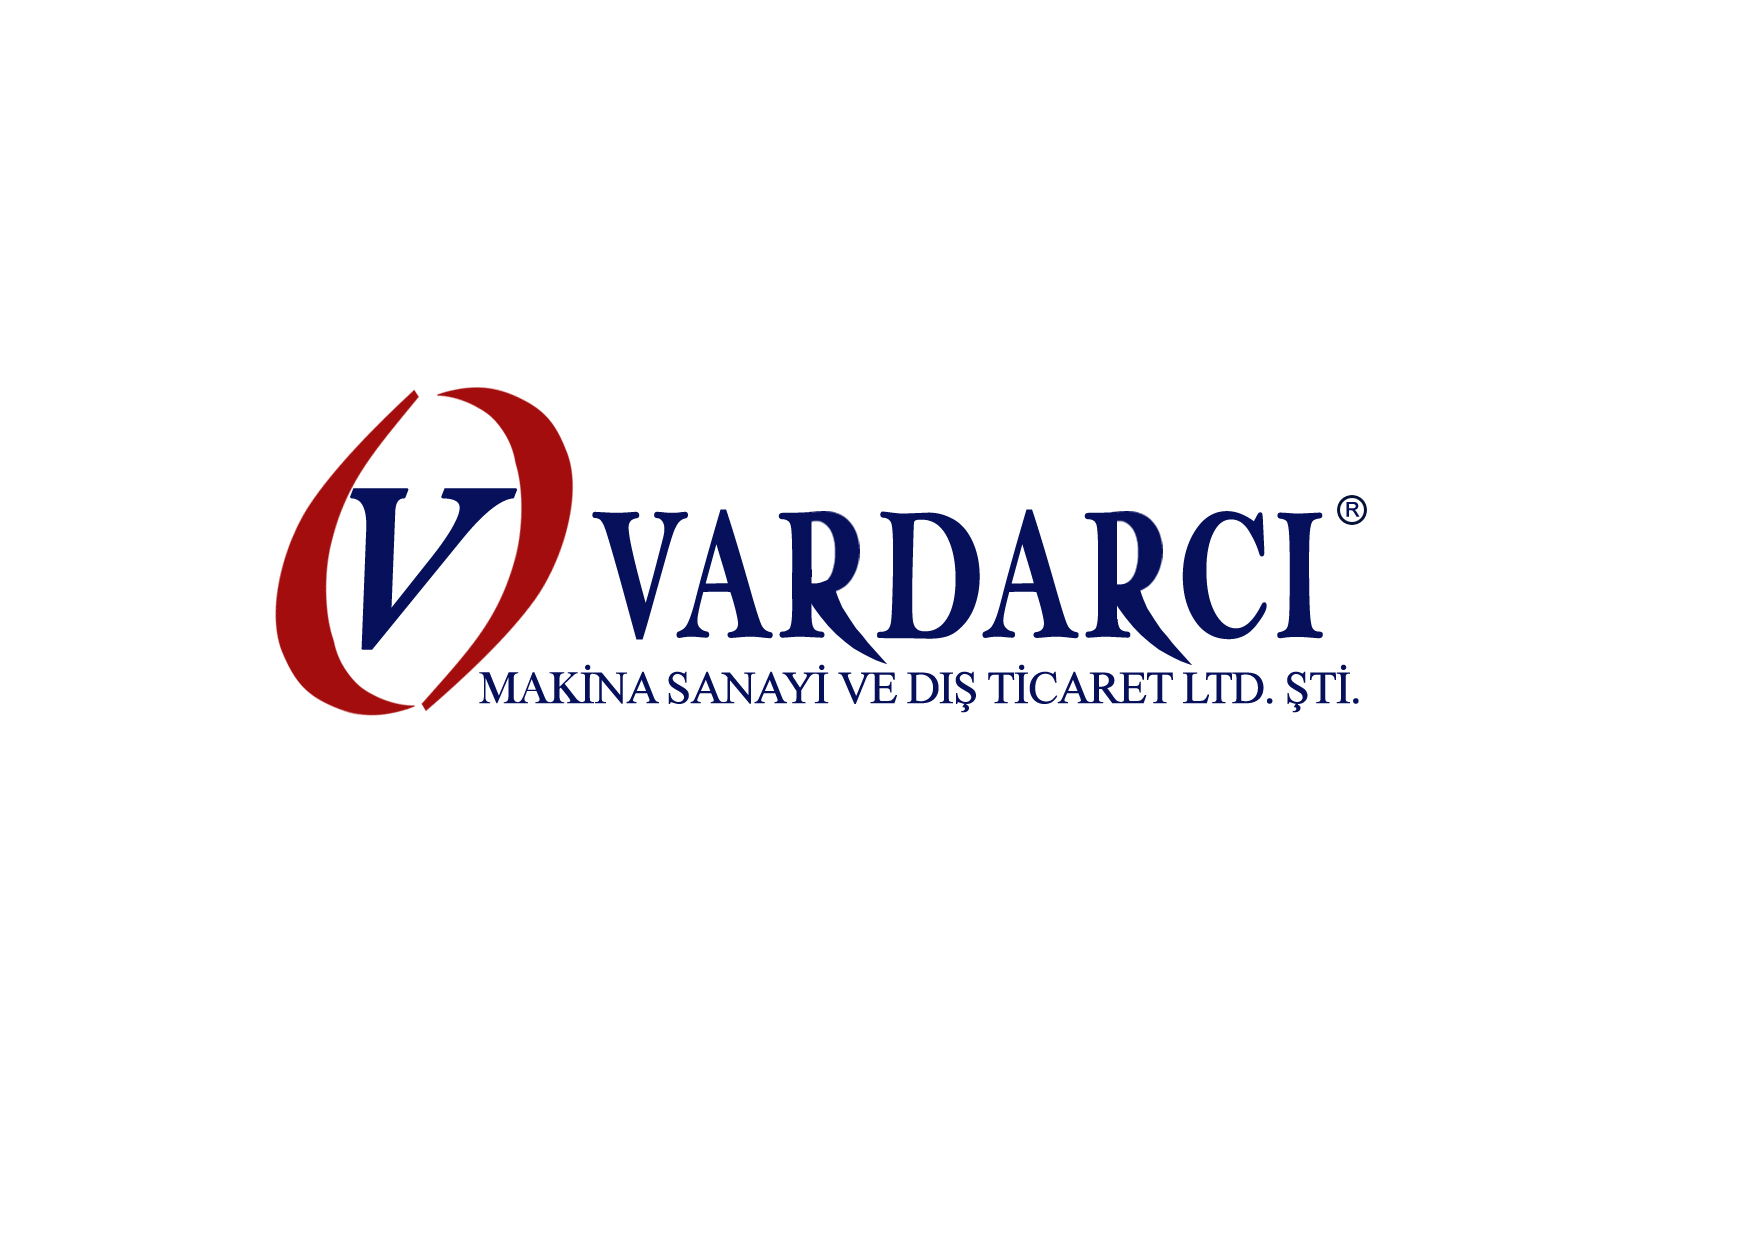 VARDARCI İTHALAT VE İHRACAT LİMİTED ŞİRKETİ  (Cottonseed and other oilseed processing machinery manufacturing)